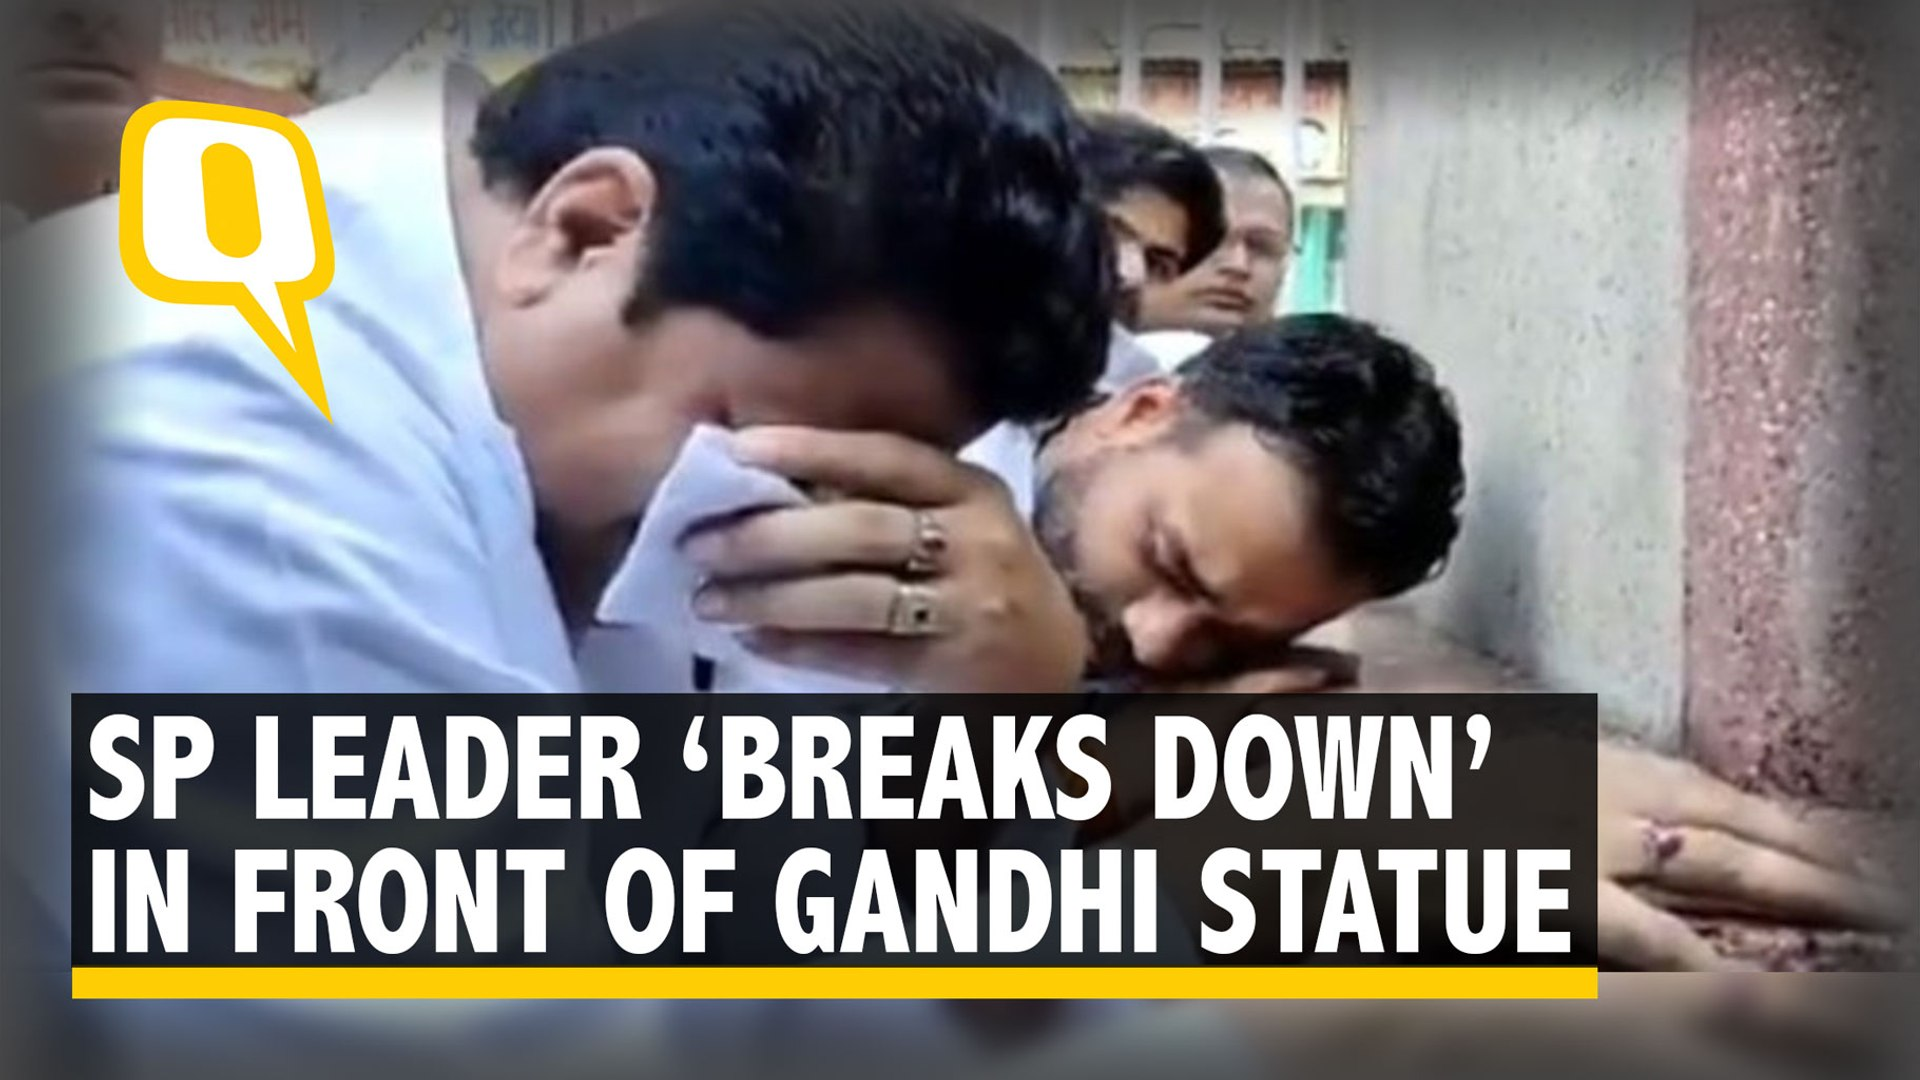 SP Leader Trolled For 'Crying' in Front of Gandhi Statue in Sambhal, UP